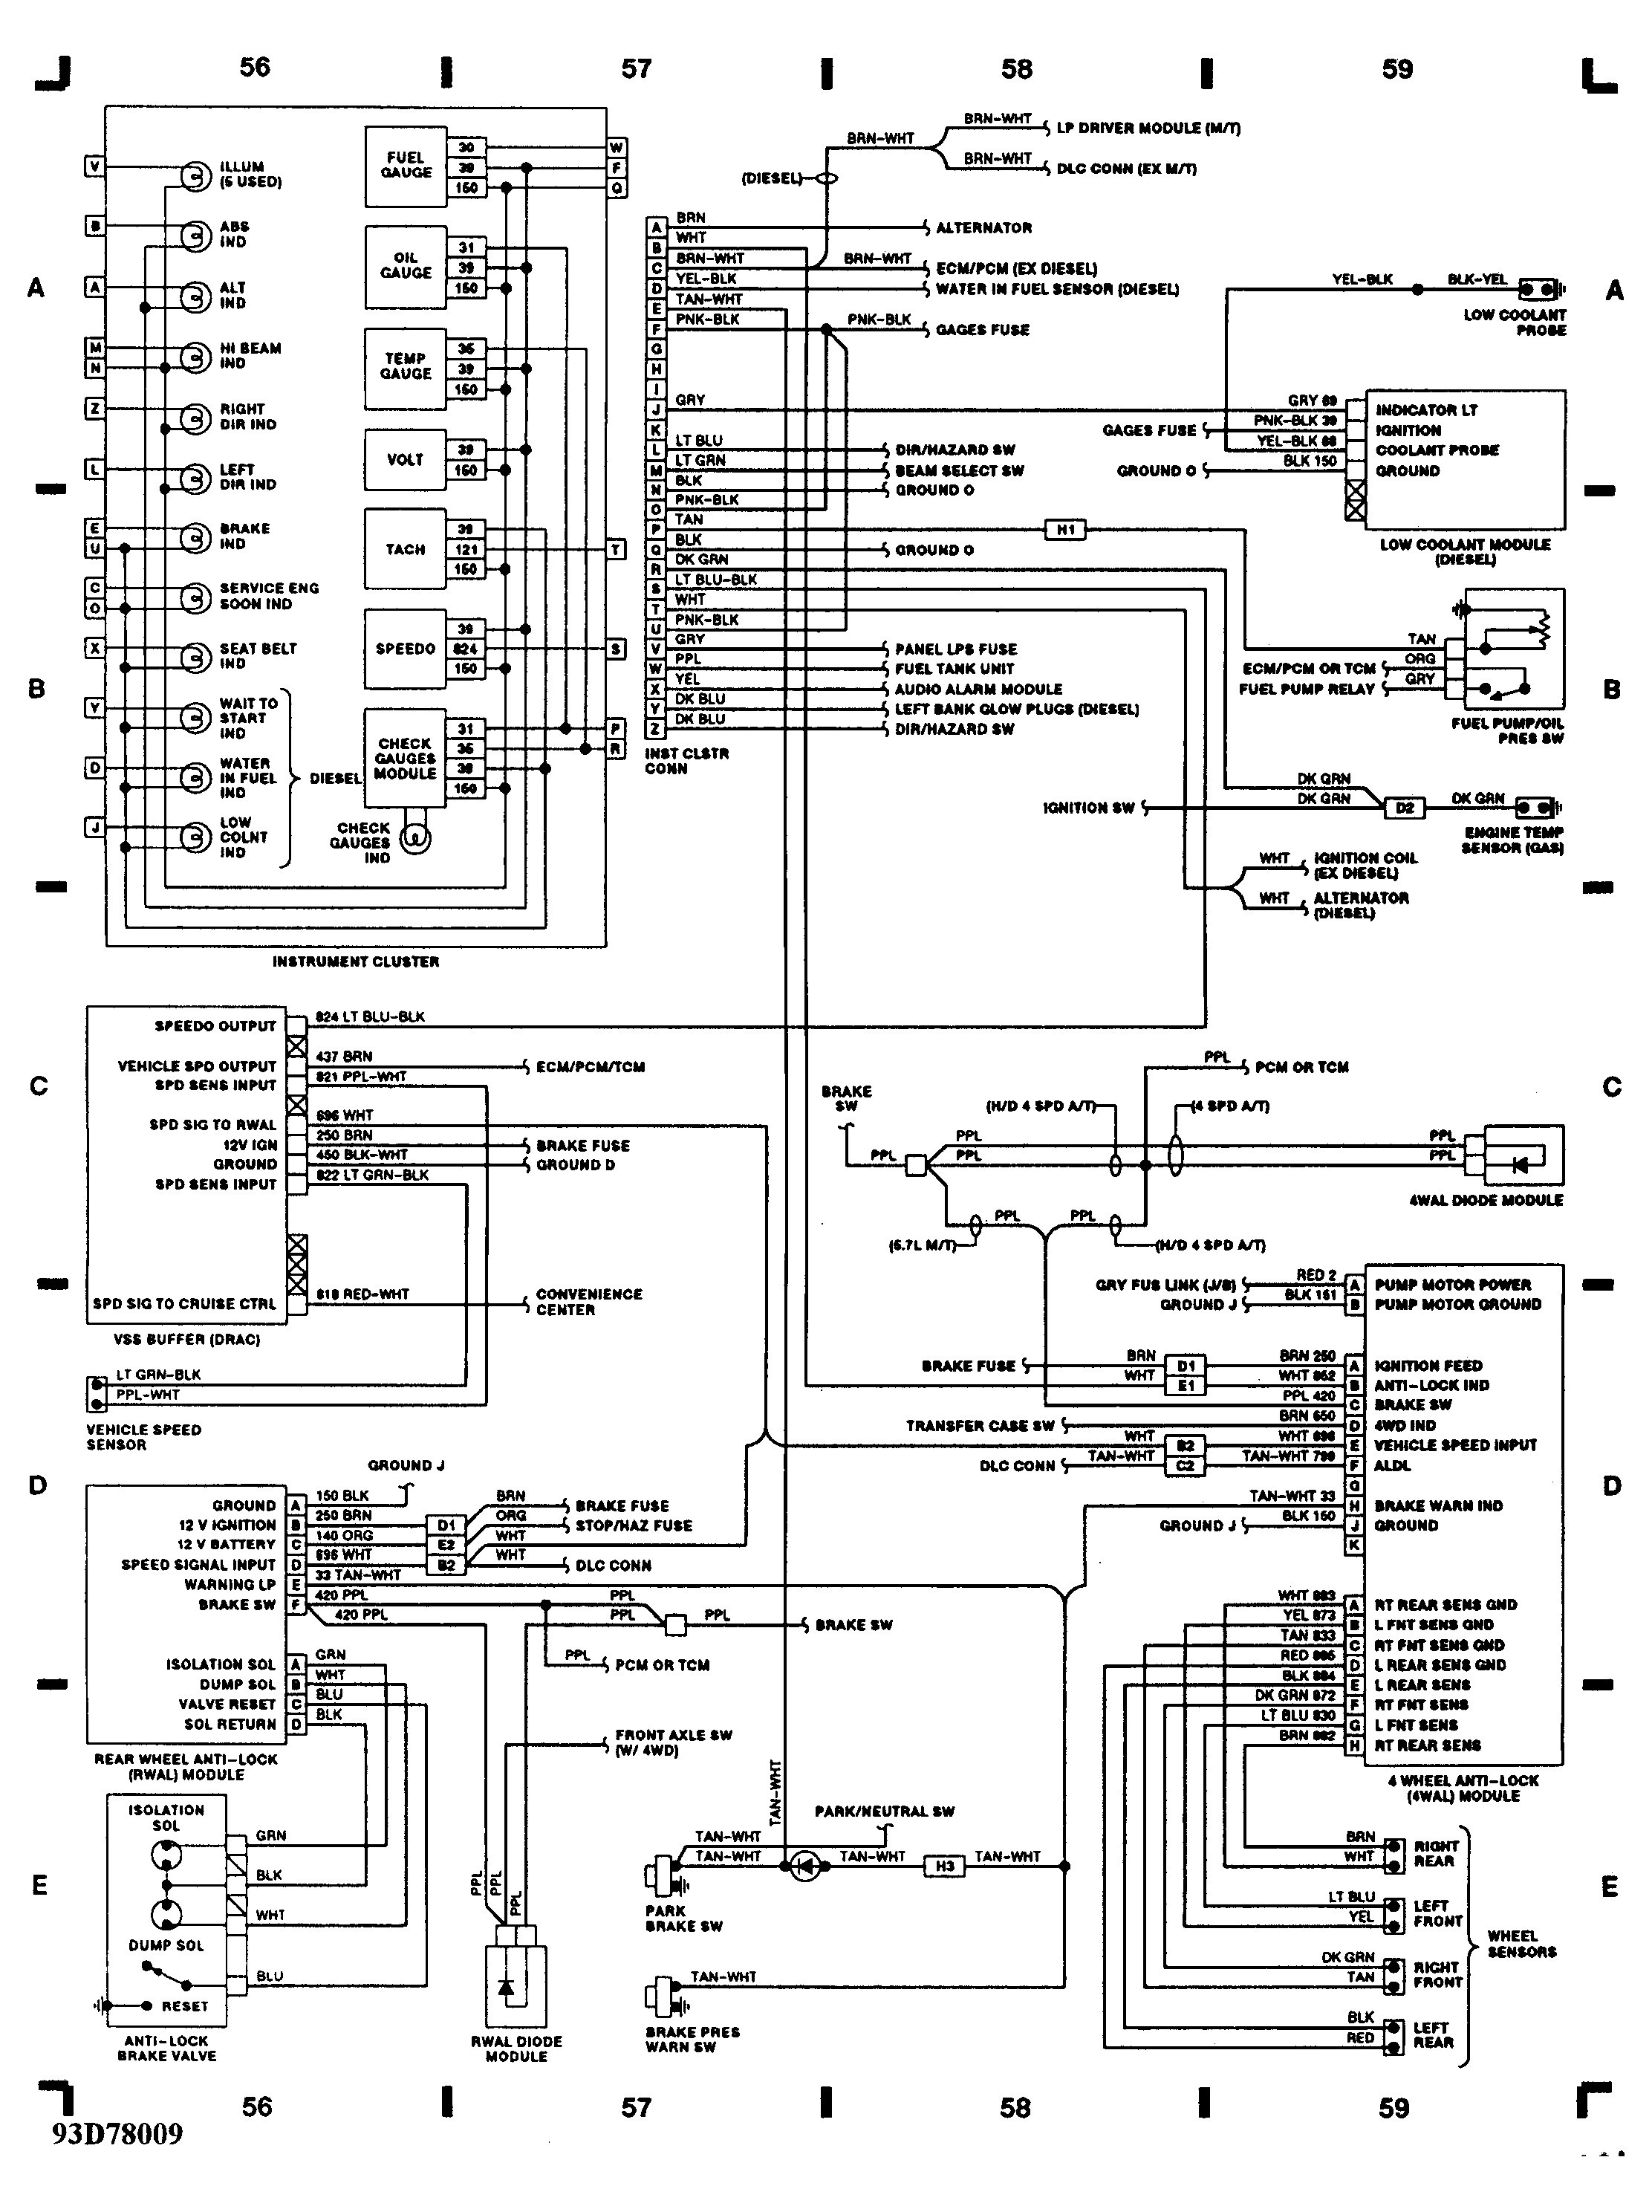 1997 Chevy Truck Wiring Harness - Reading industrial wiring ... on oh diagram, ac diagram, cd diagram, vn diagram, pe diagram, vg diagram, ar diagram, ba diagram, ct diagram,